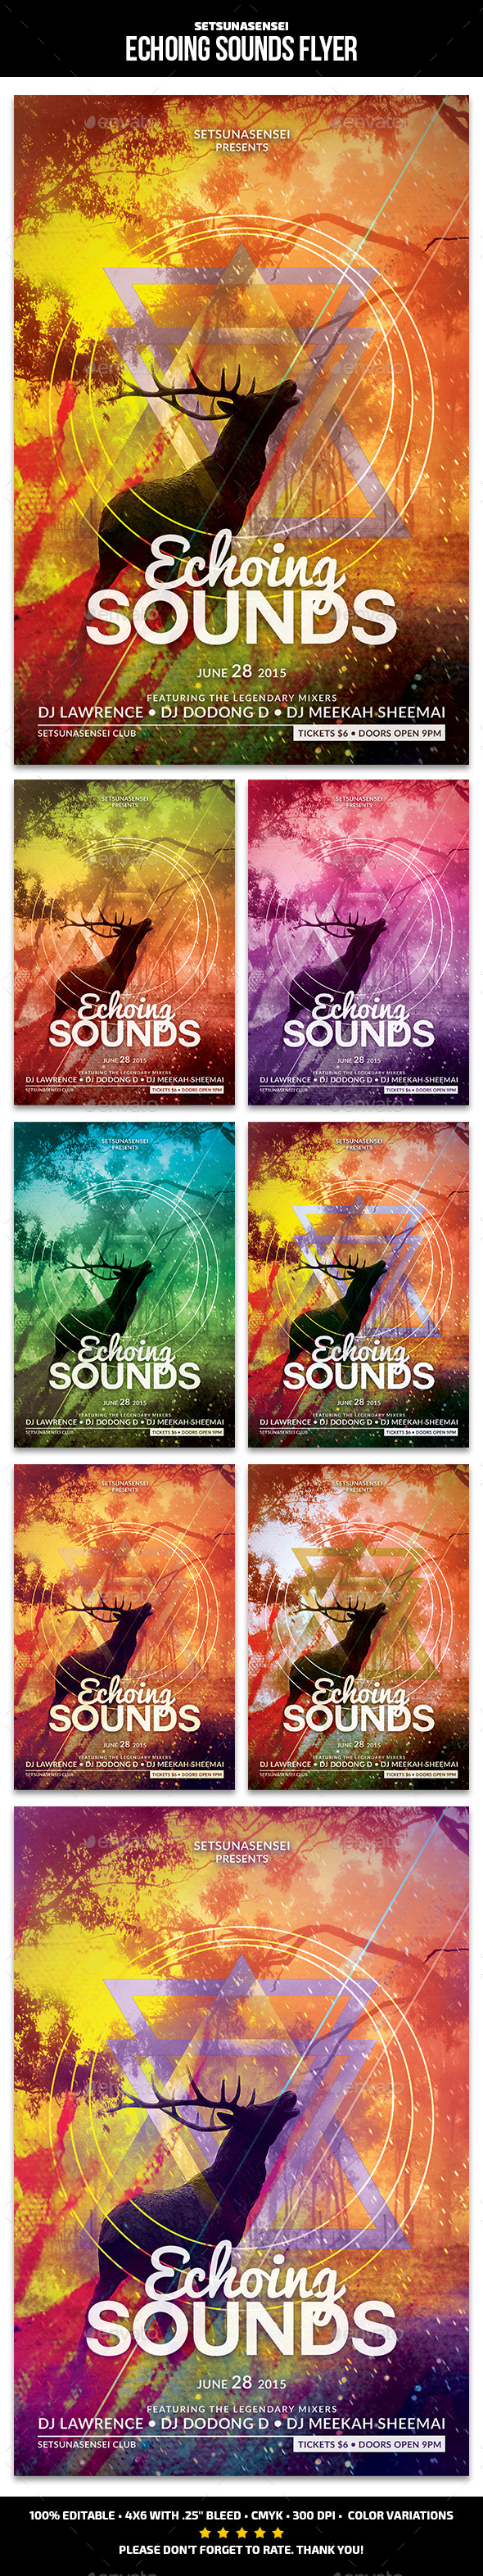 GraphicRiver Echoing Sounds Flyer 11166200